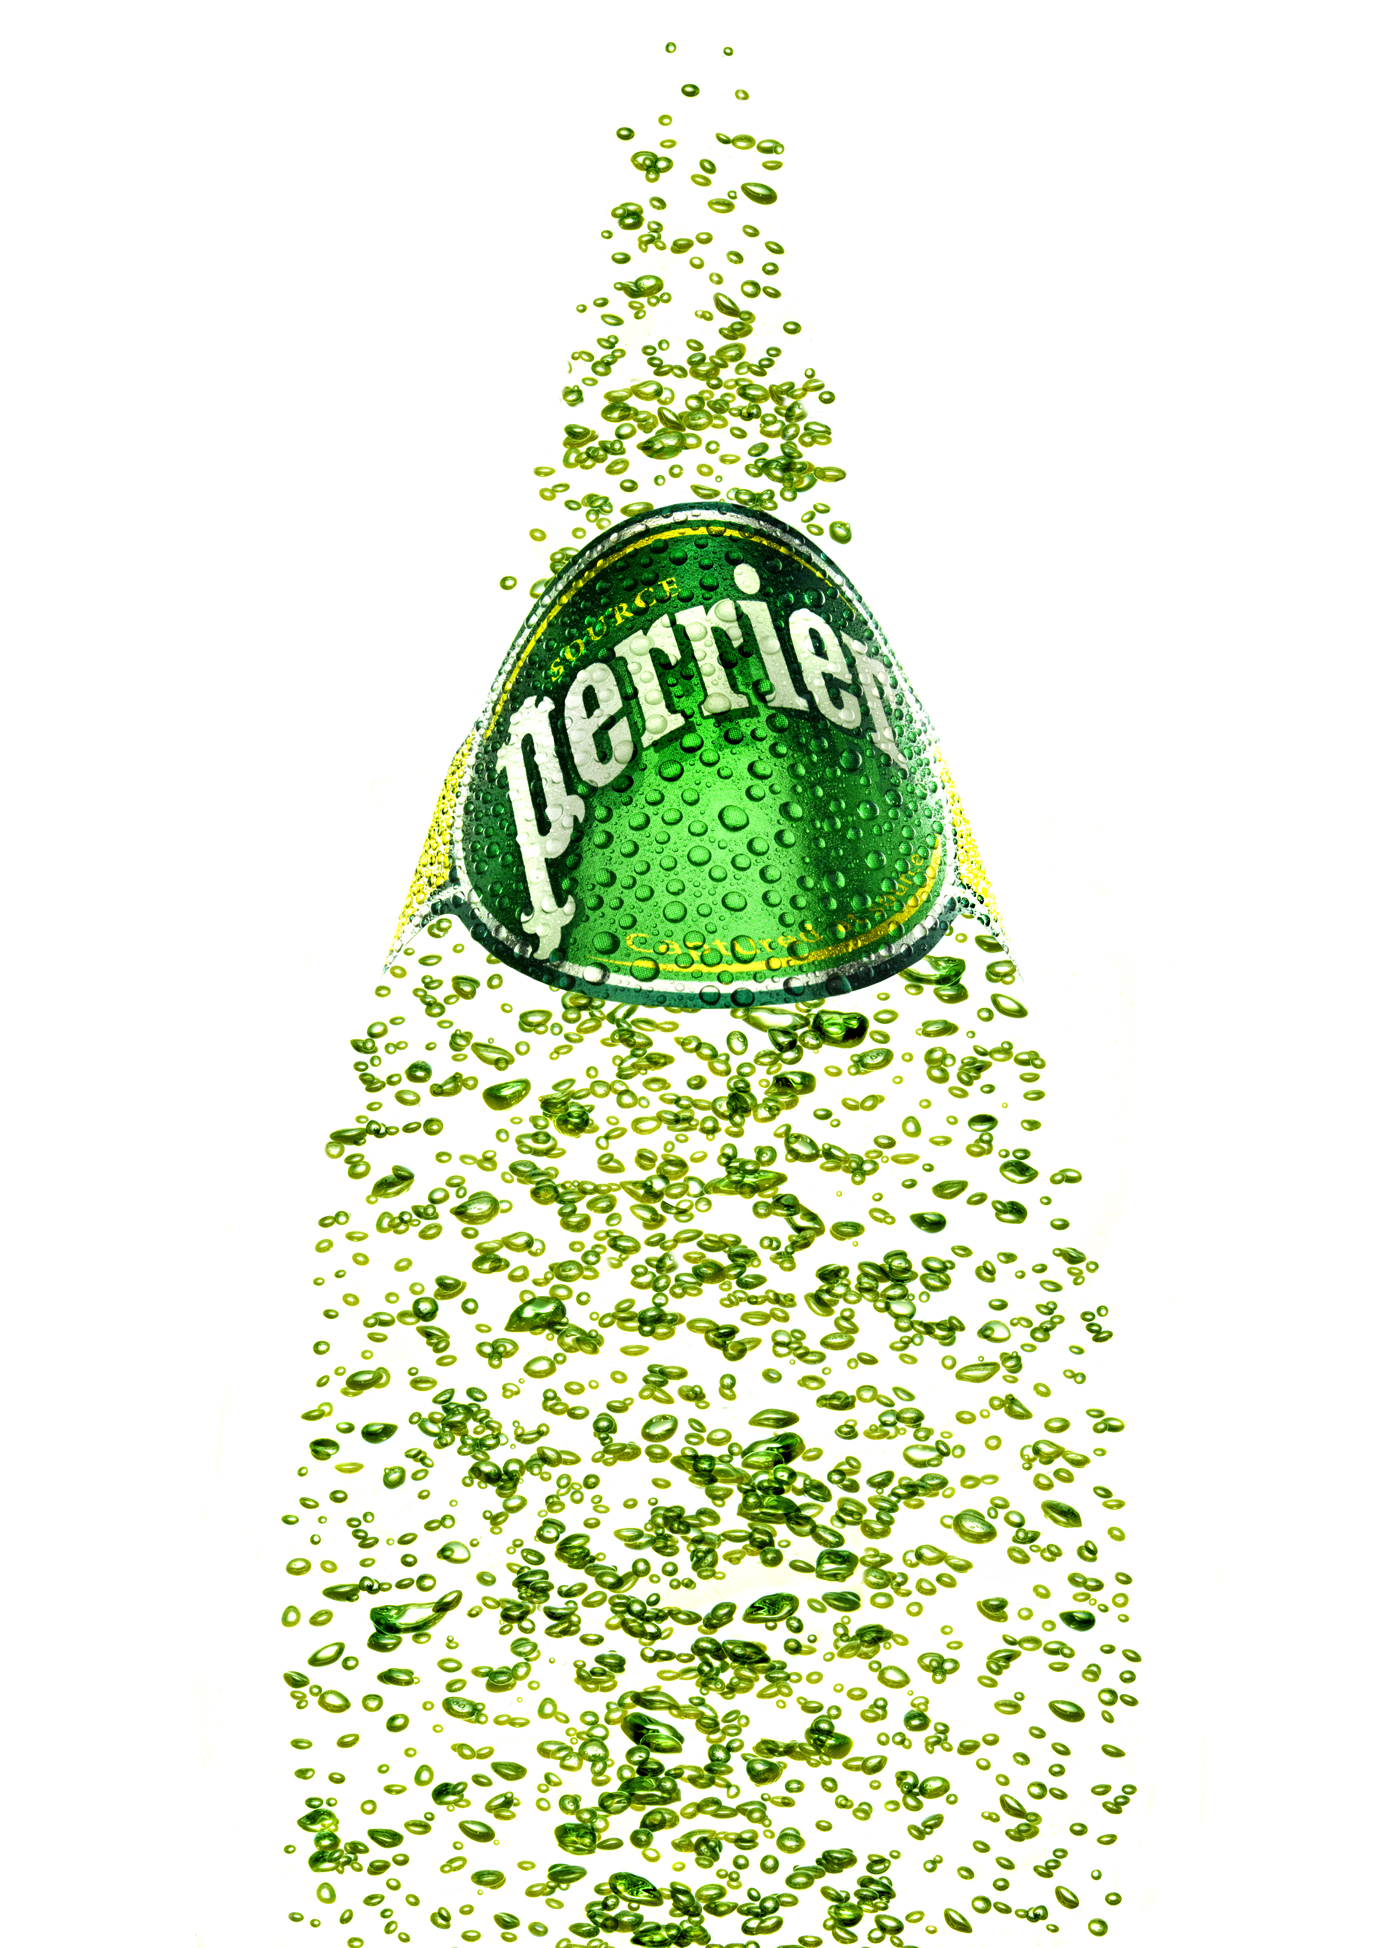 Perrier bubbles copy